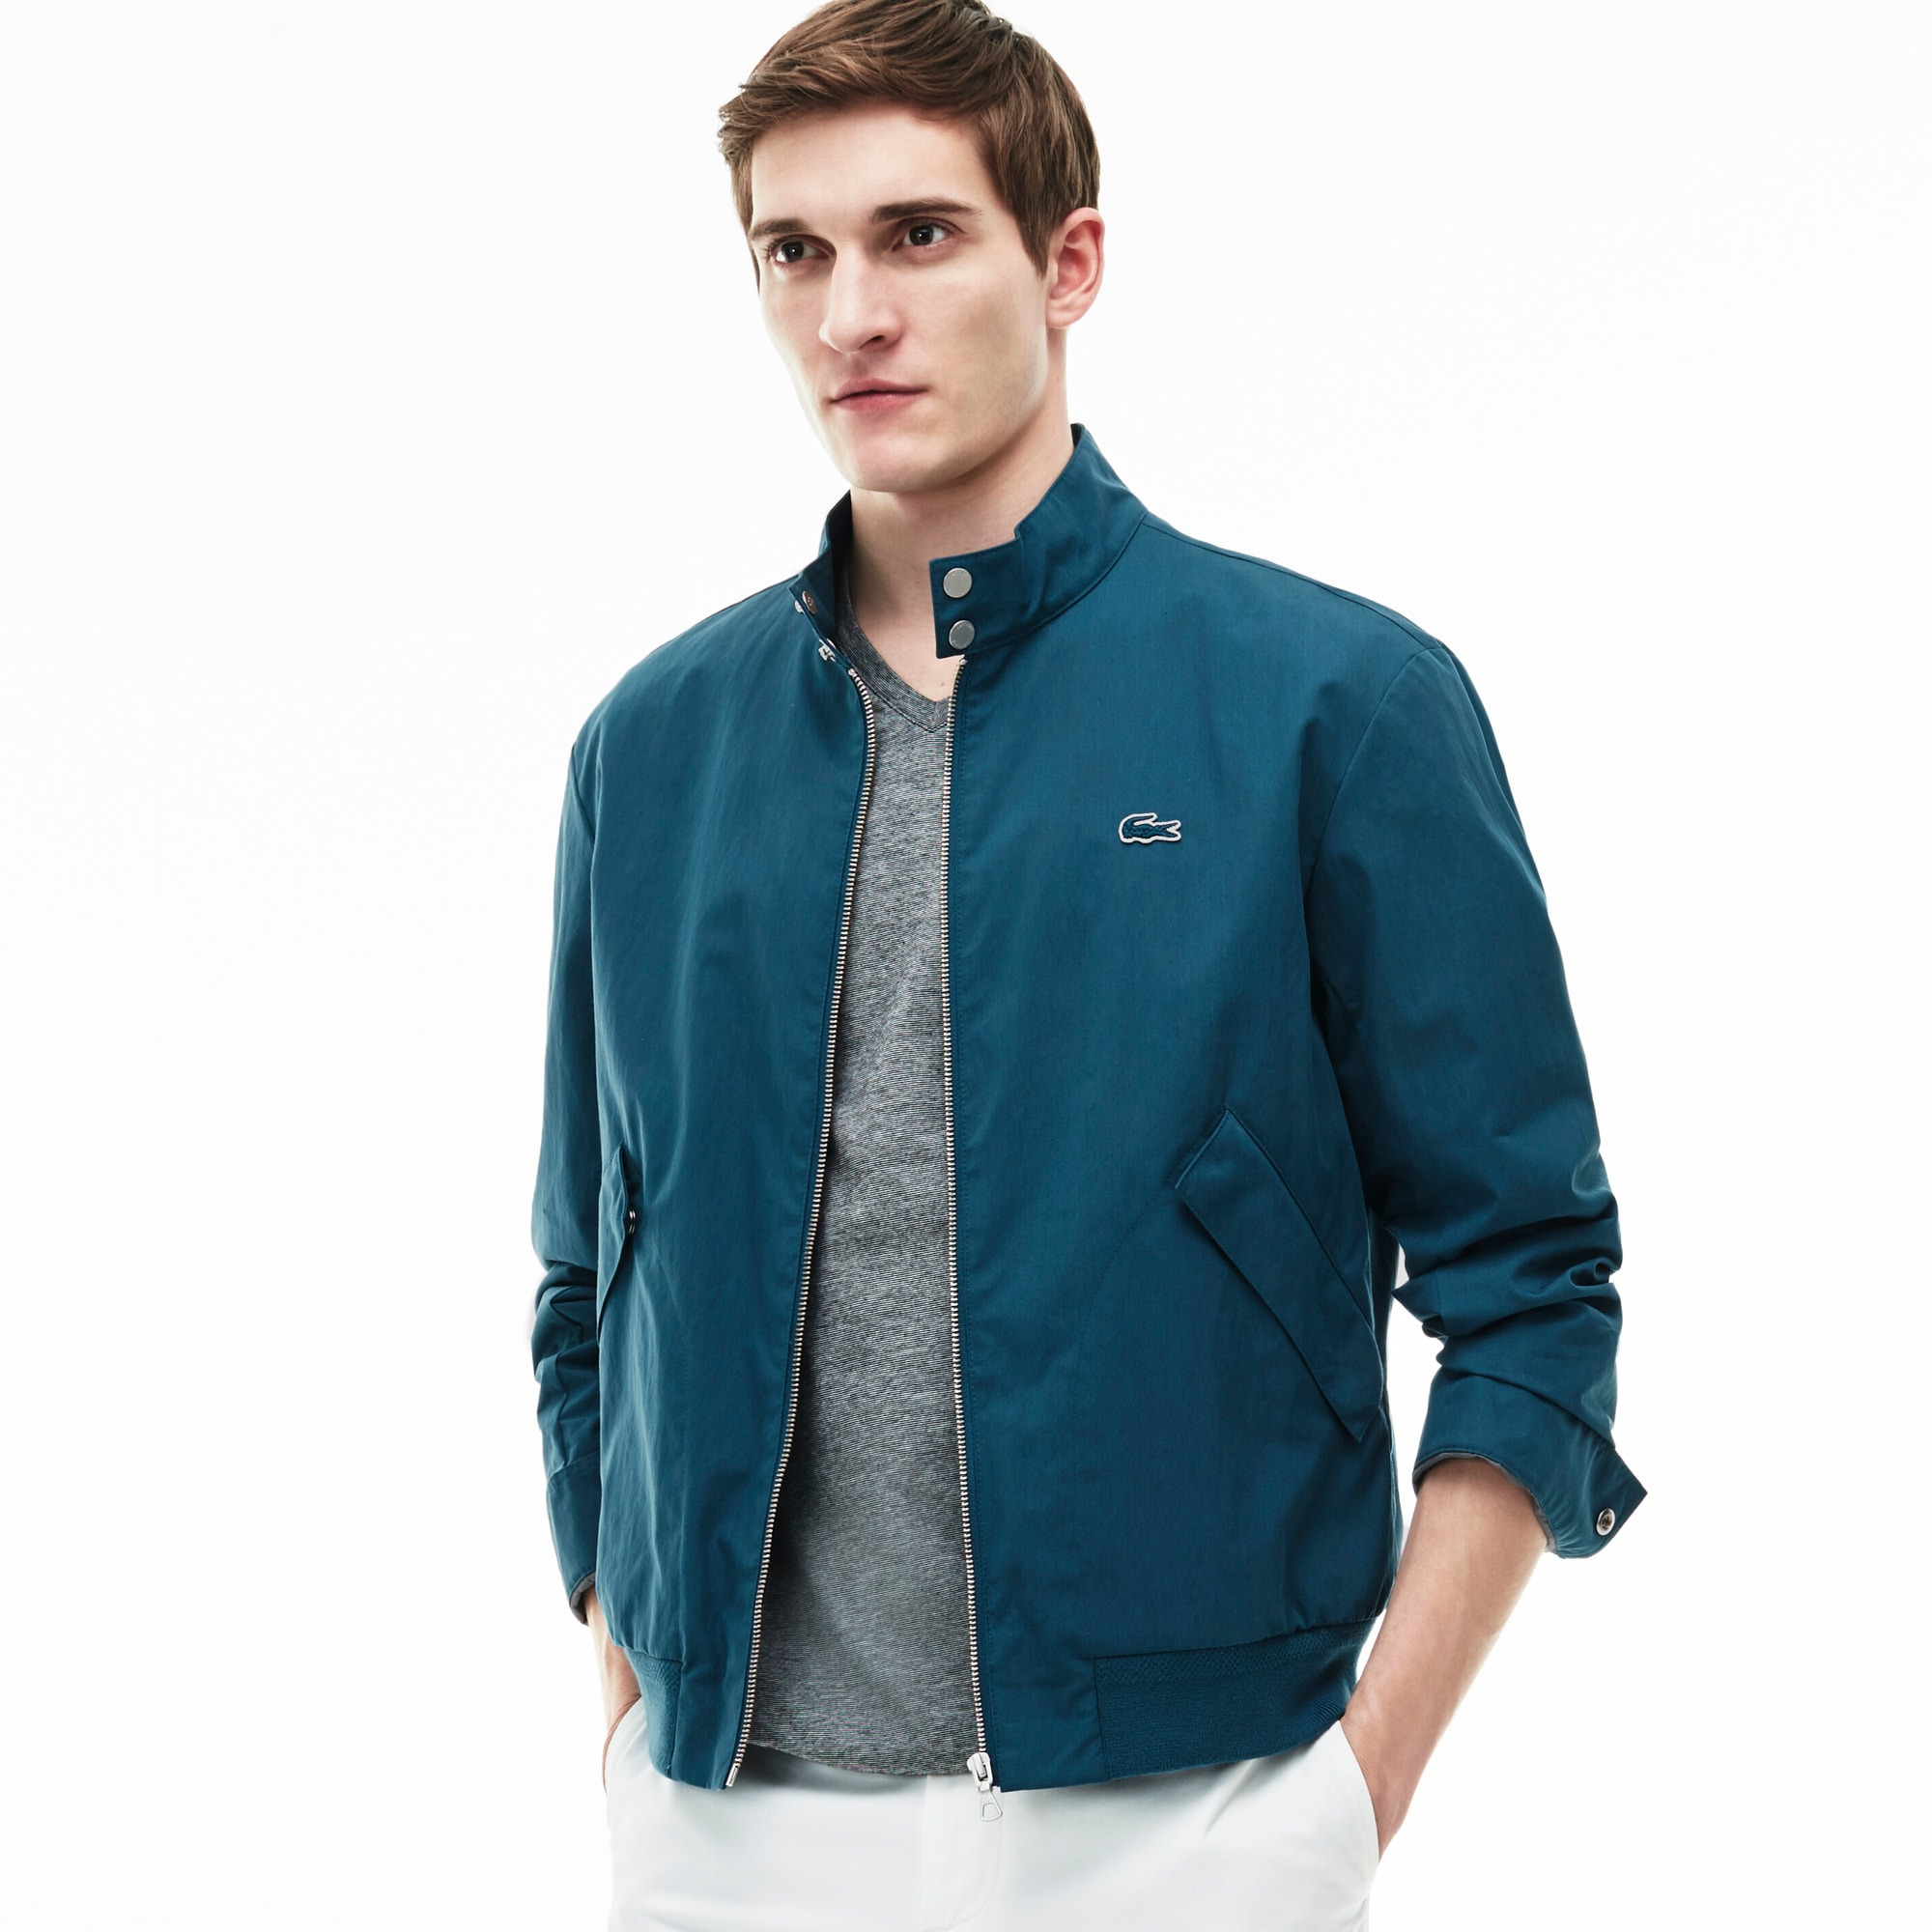 Men's Cotton Twill Zippered Harrington Jacket